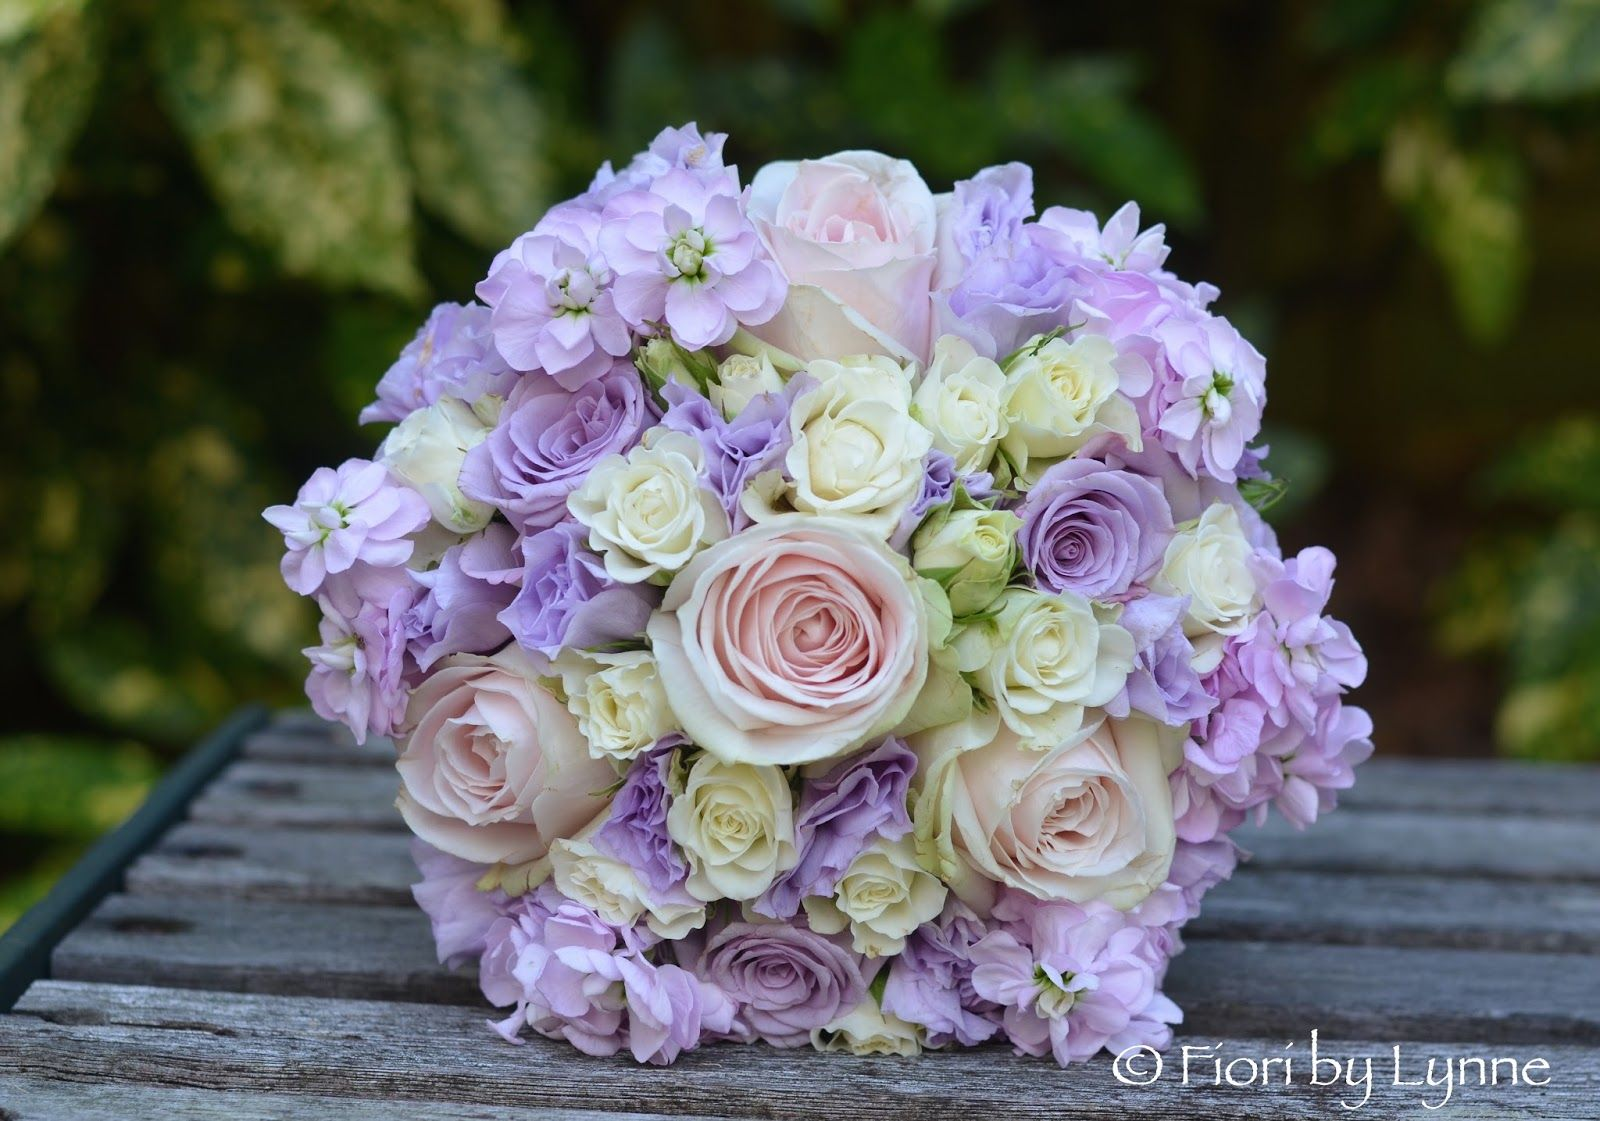 A Gorgeous Summery Scheme In Soft Lilacs And Pinks For An Early July Wedding Laras Bouquet Of Lilac Pale Pink Roses Ivory Sp